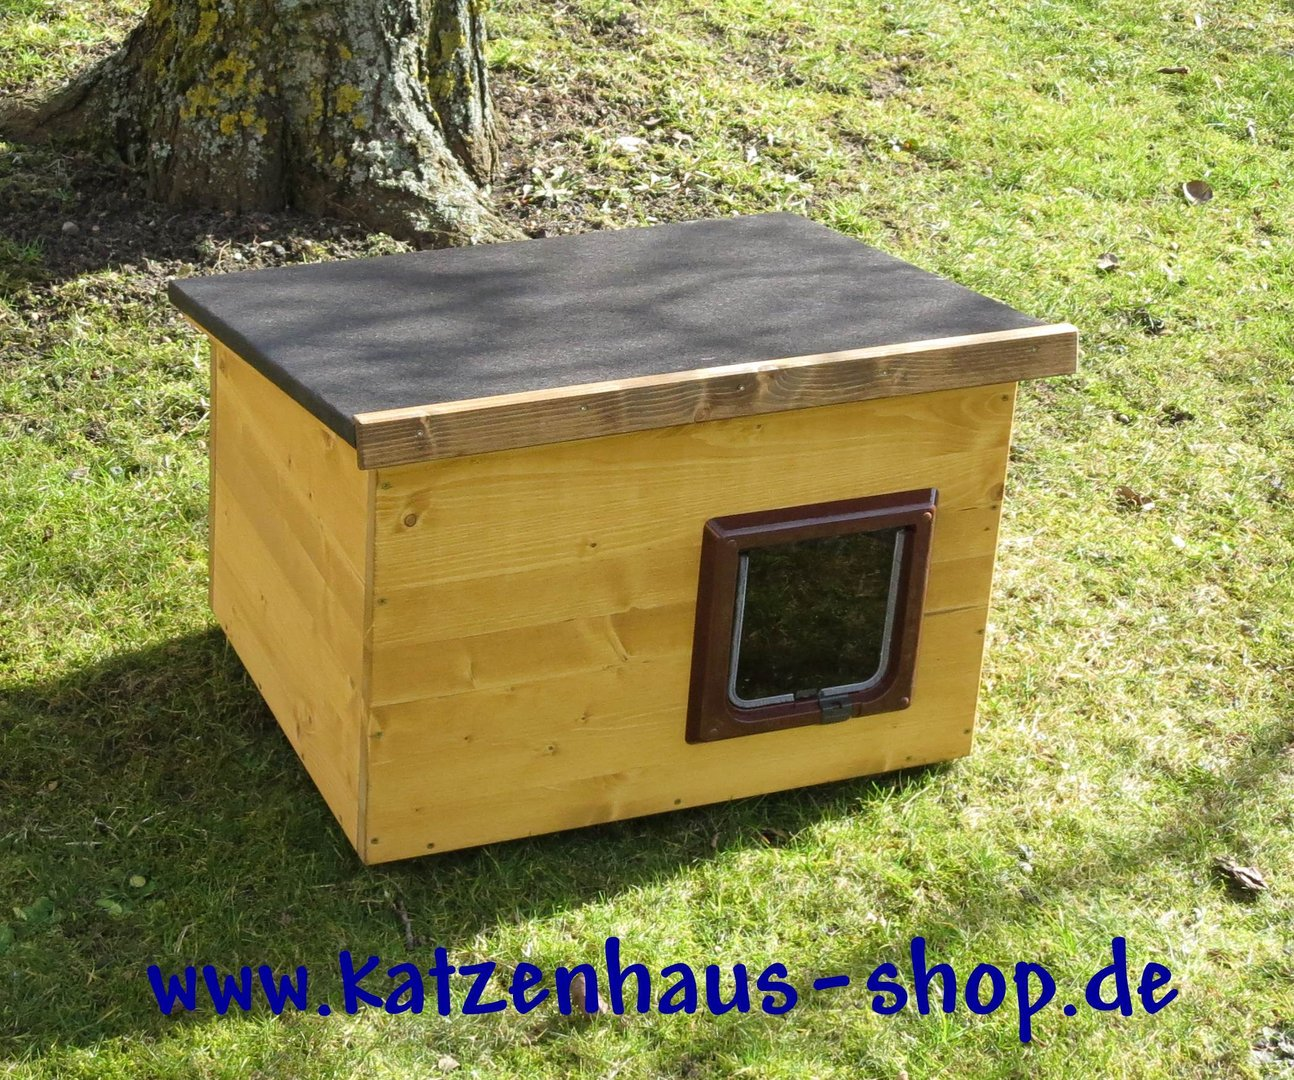 katzenhaus flachdach farbe kiefer katzenhaus wetterfest f r drau en. Black Bedroom Furniture Sets. Home Design Ideas